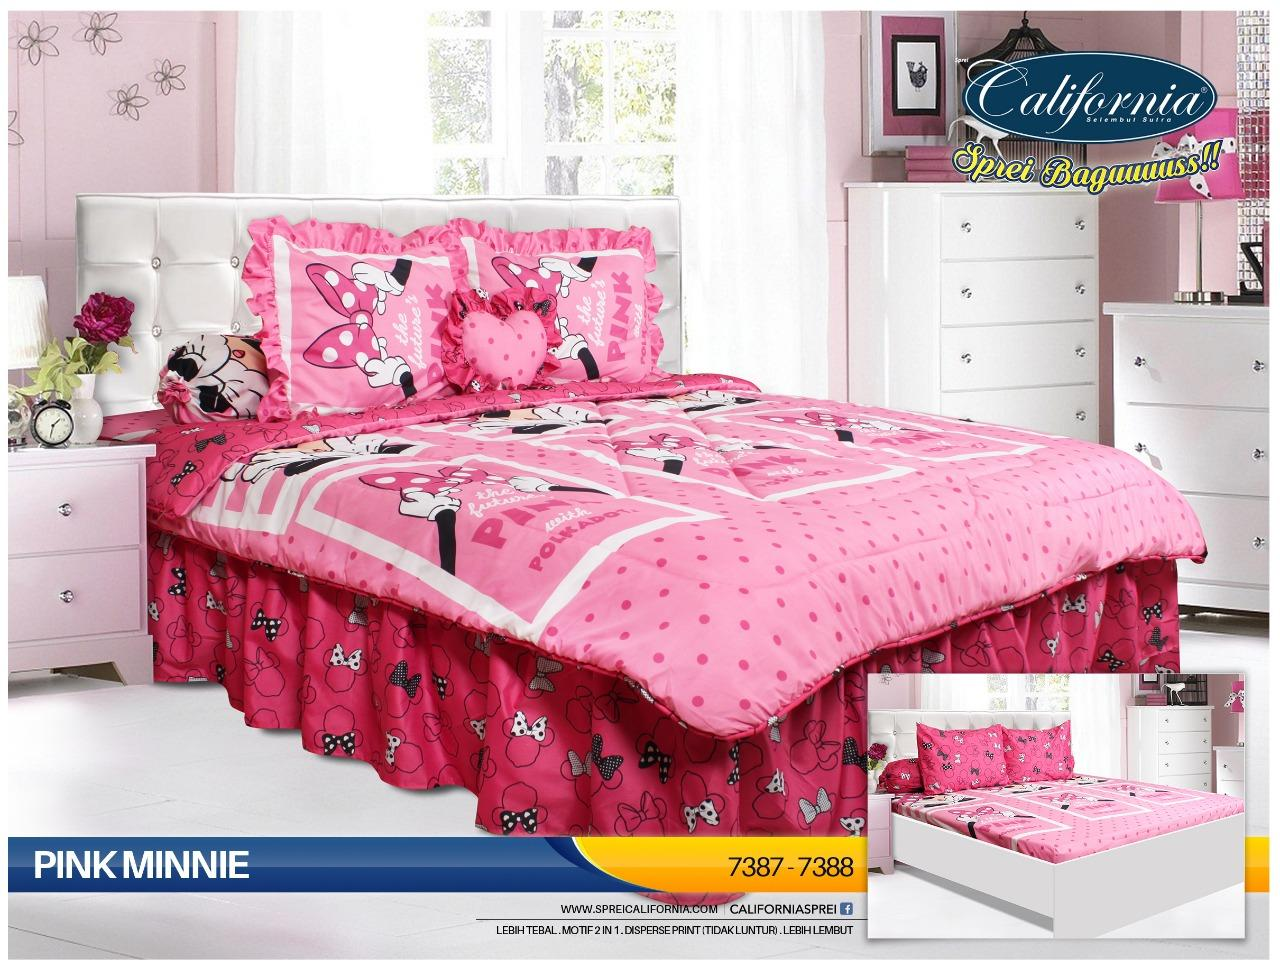 Bed Cover CALIFORNIA motif PINK MINNIE King Size 180 x 200 cm